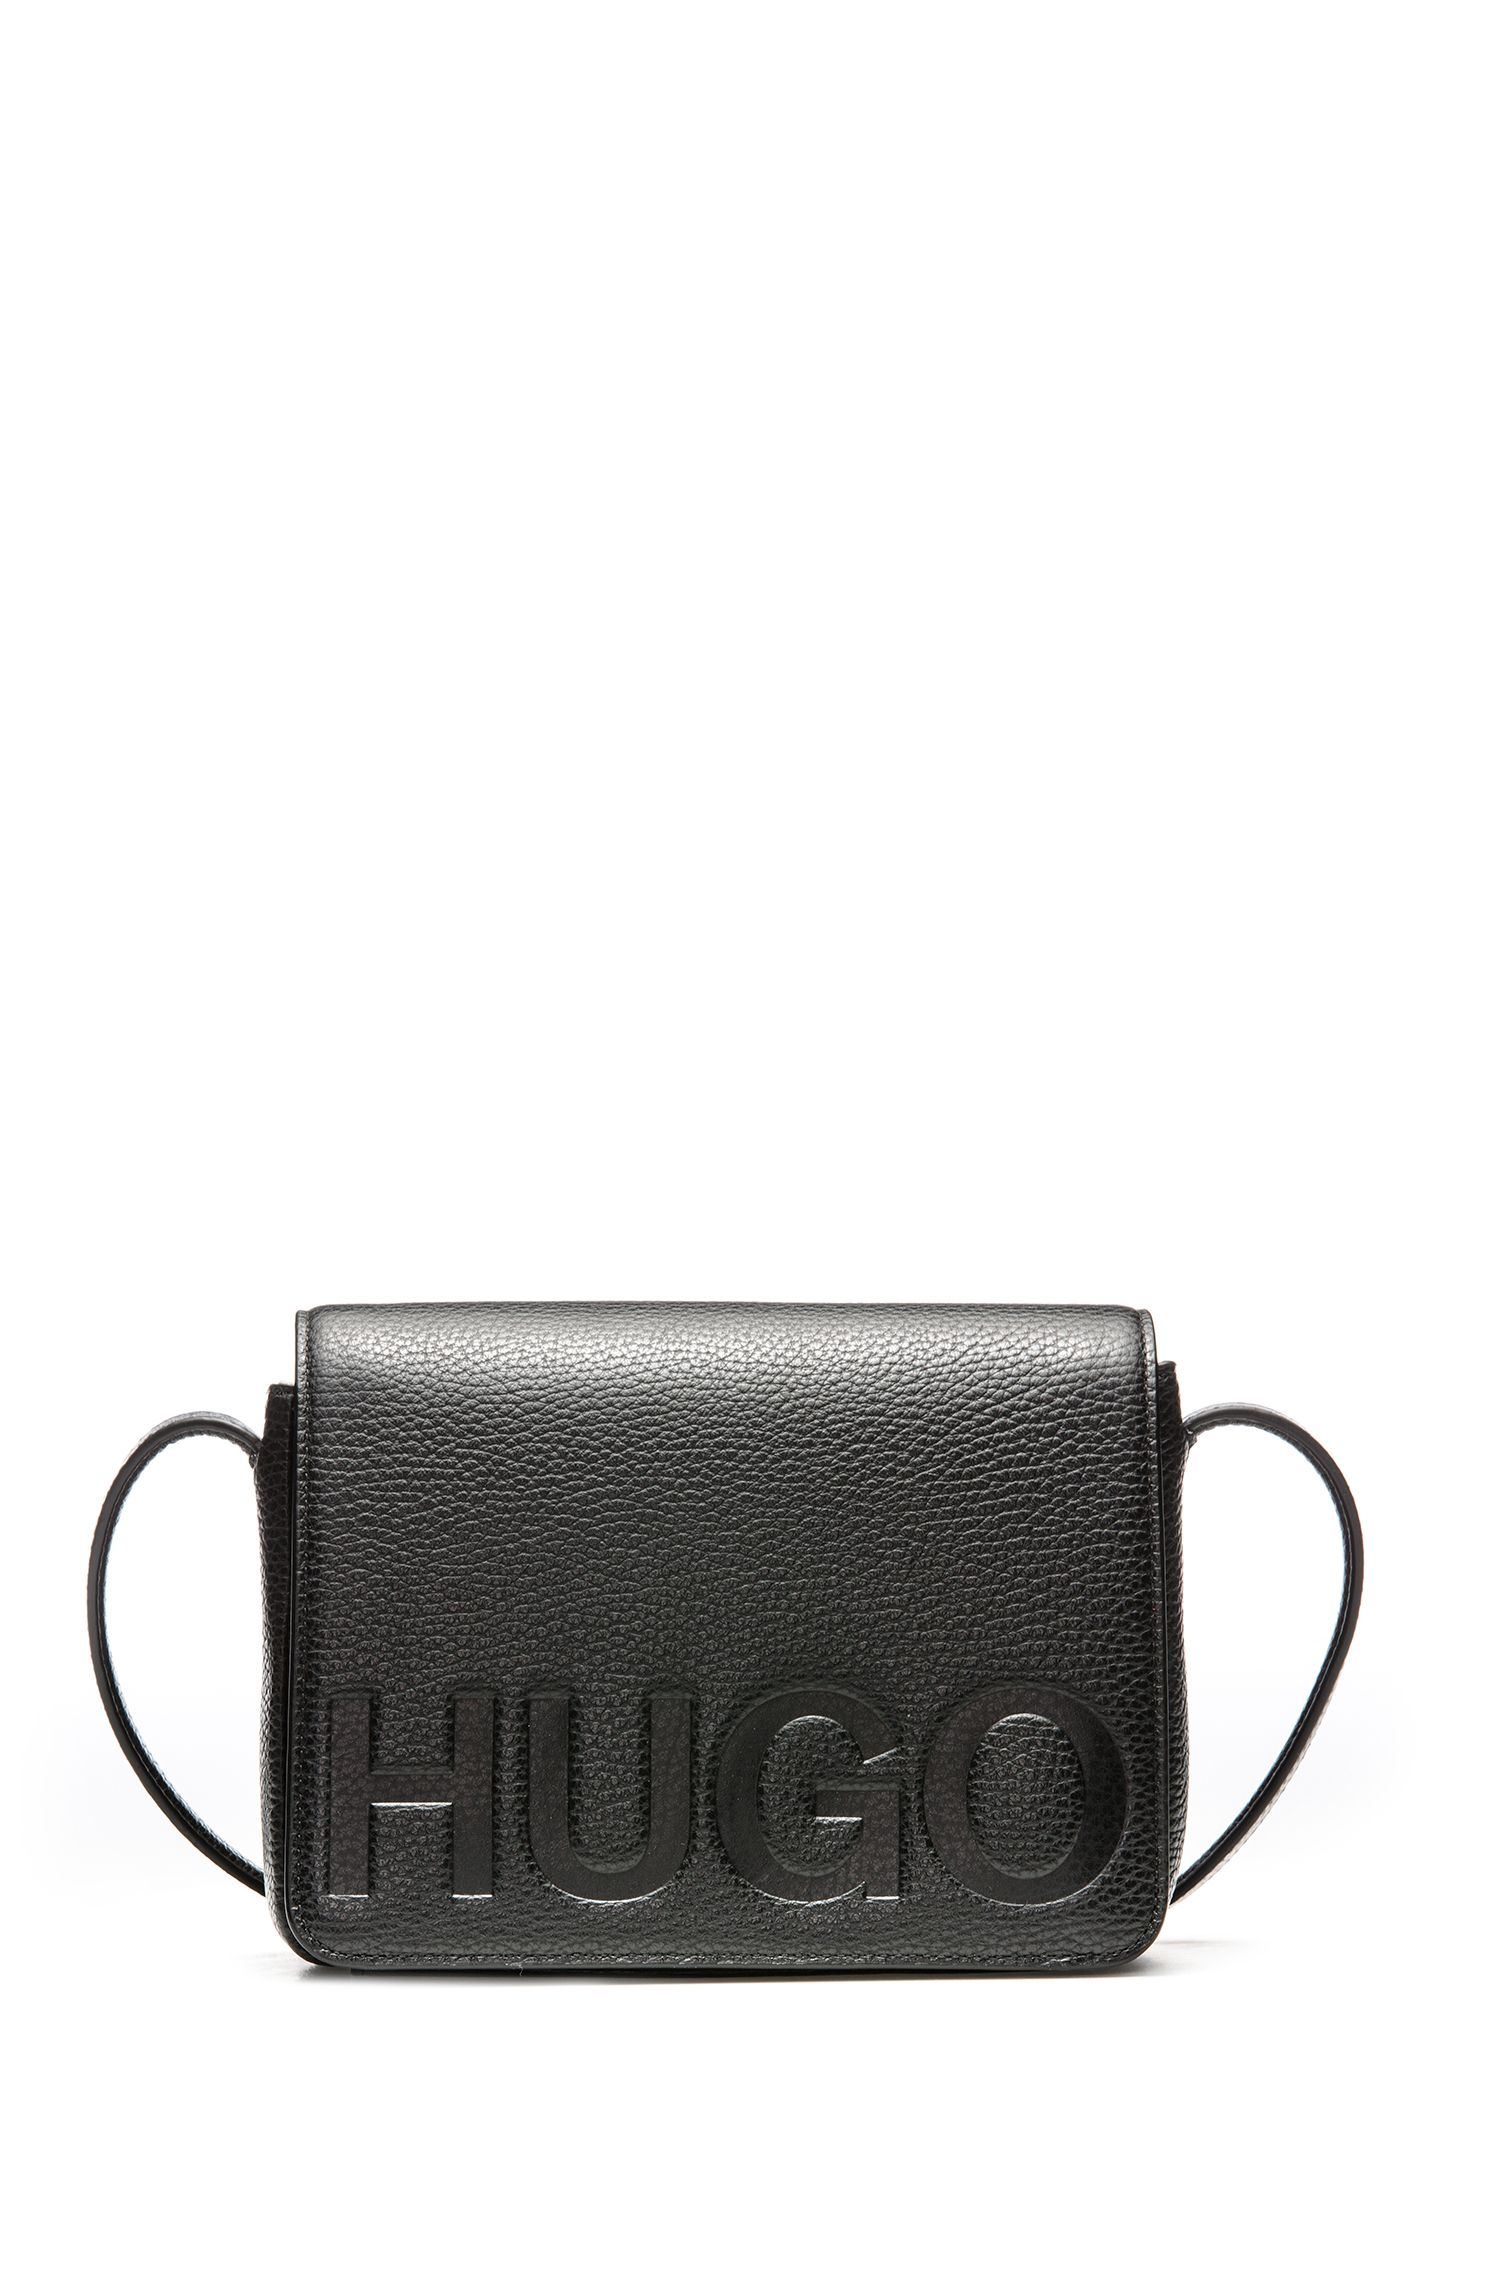 Leather cross-body bag with embossed logo